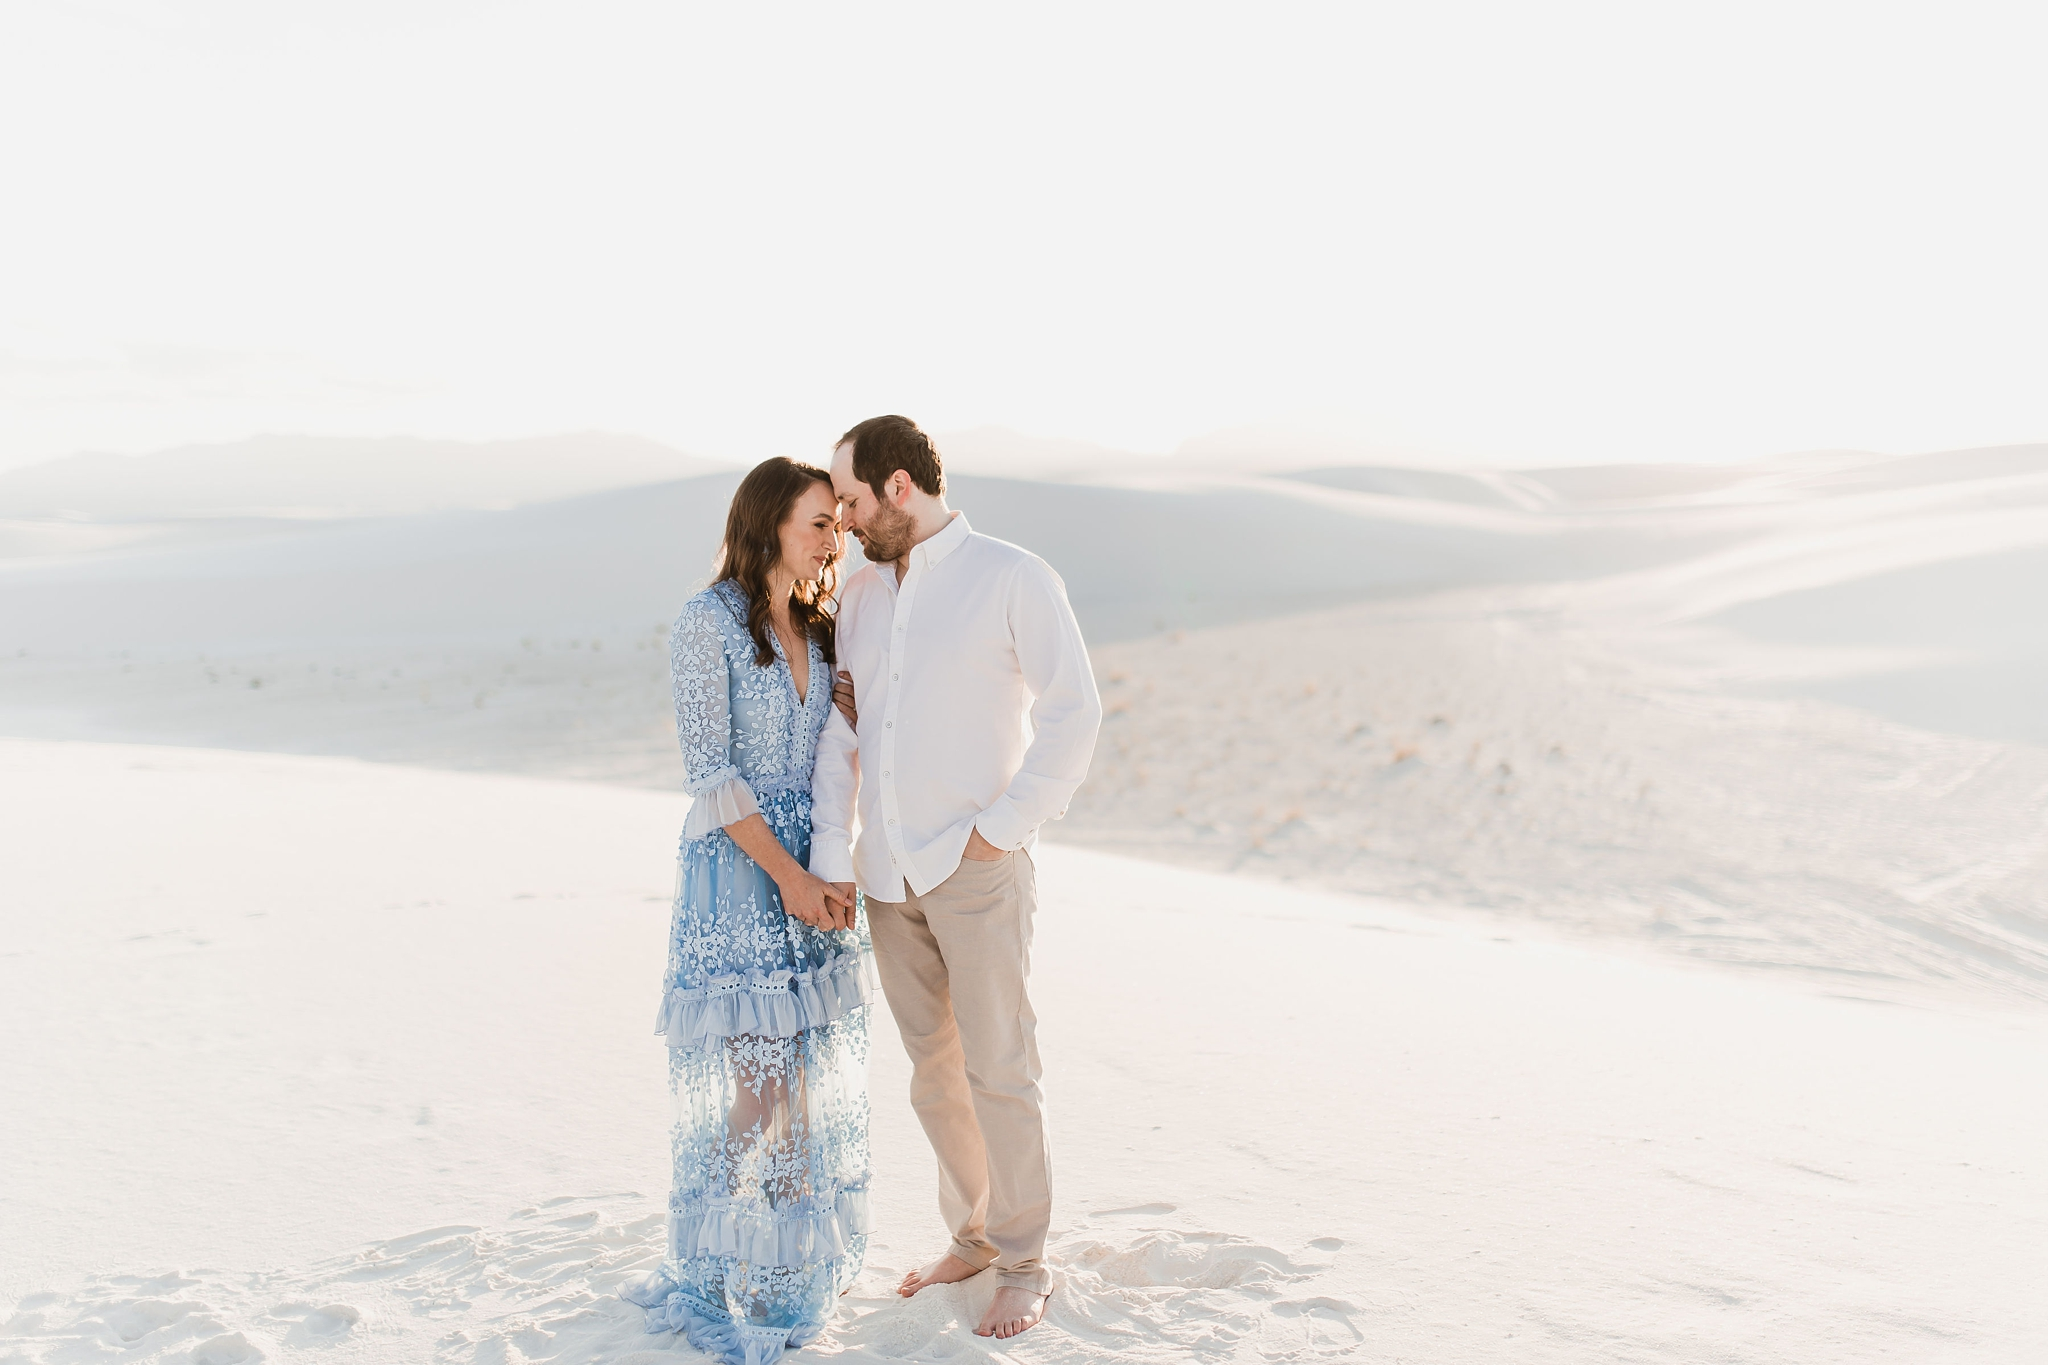 Alicia+lucia+photography+-+albuquerque+wedding+photographer+-+santa+fe+wedding+photography+-+new+mexico+wedding+photographer+-+new+mexico+wedding+-+new+mexico+engagement+-+white+sands+engagement+-+white+sands+national+monument_0029.jpg